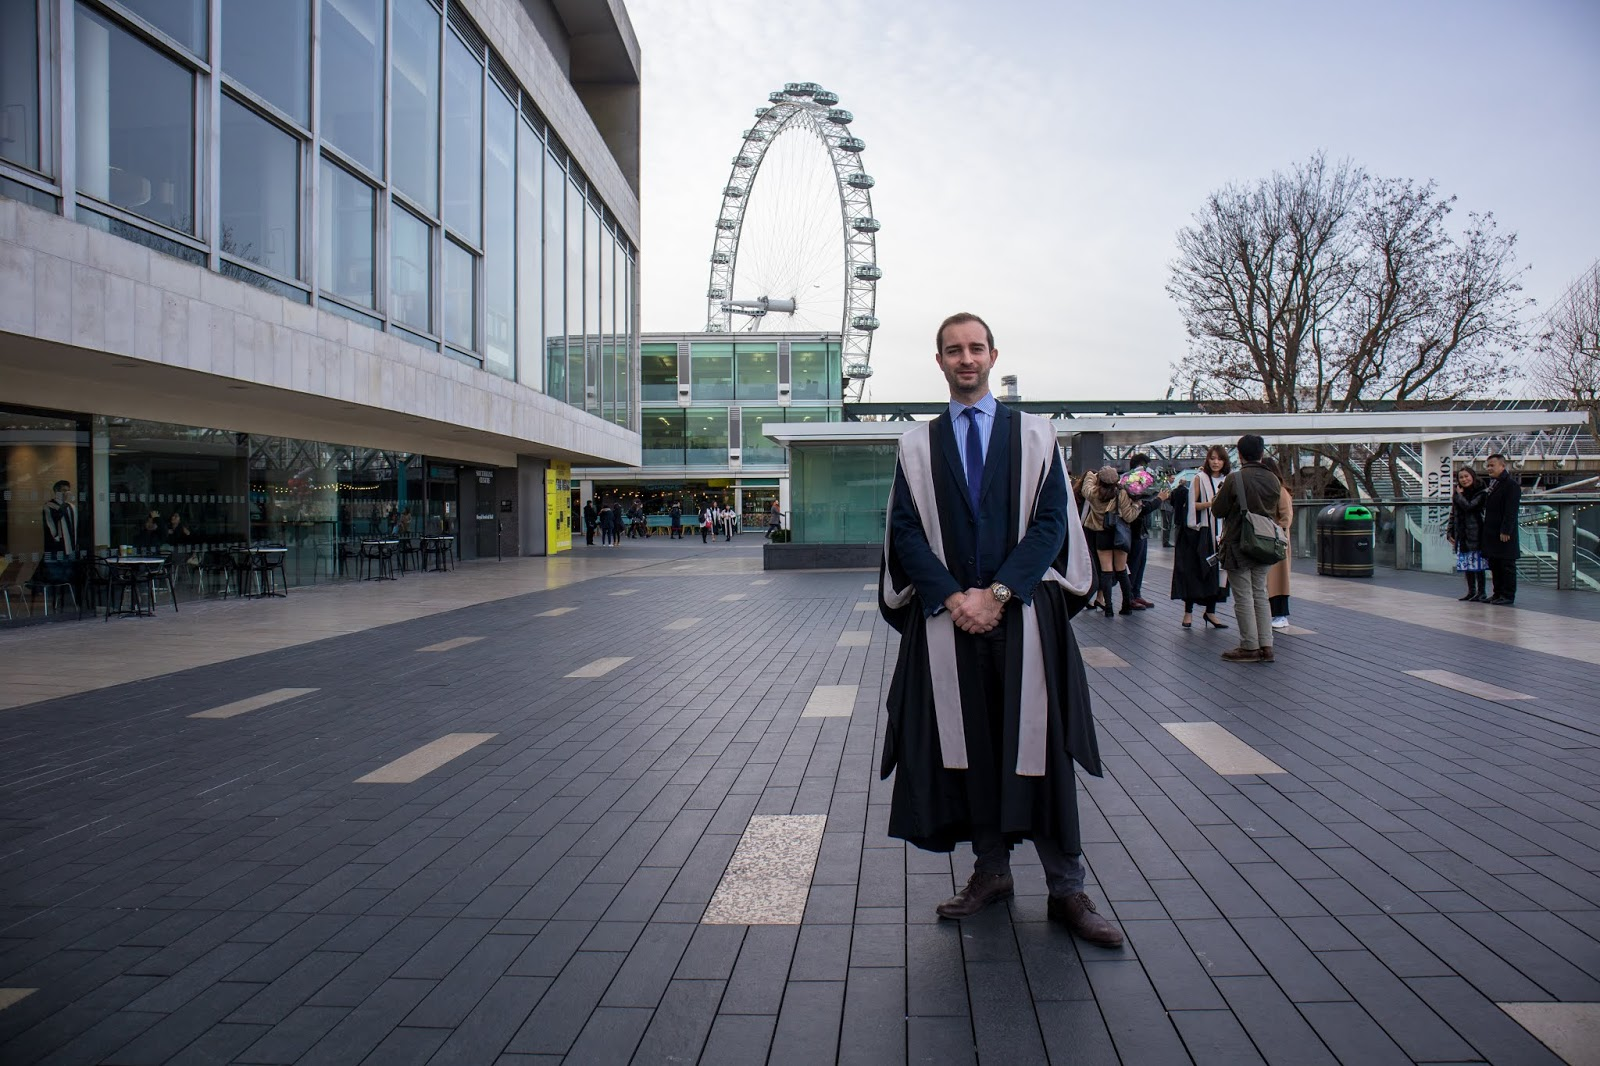 KCL Graduation 2019, london january 2019, suz and the sun travels, suz and the sun style, london eye, southbank centre, royal festival hall, graduate